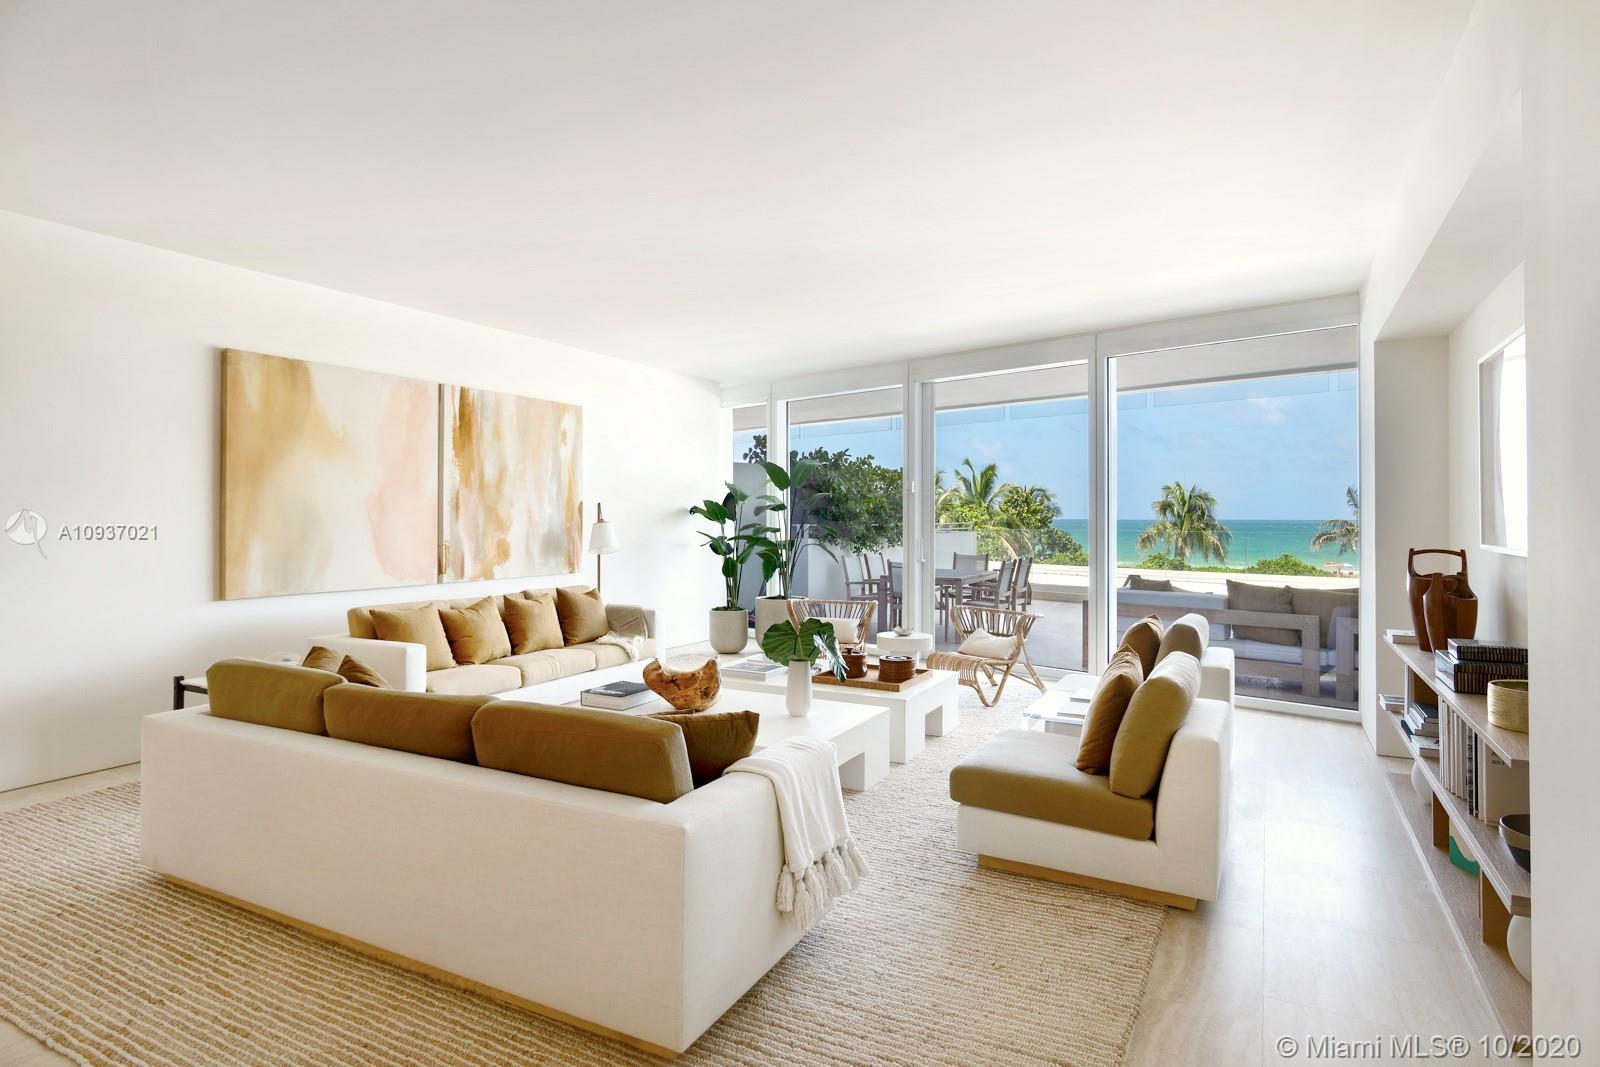 Enjoy FOUR SEASONS LIVING from this 4 bedroom, 4.5 bath + staff room residence with PRIVATE POOL. Th